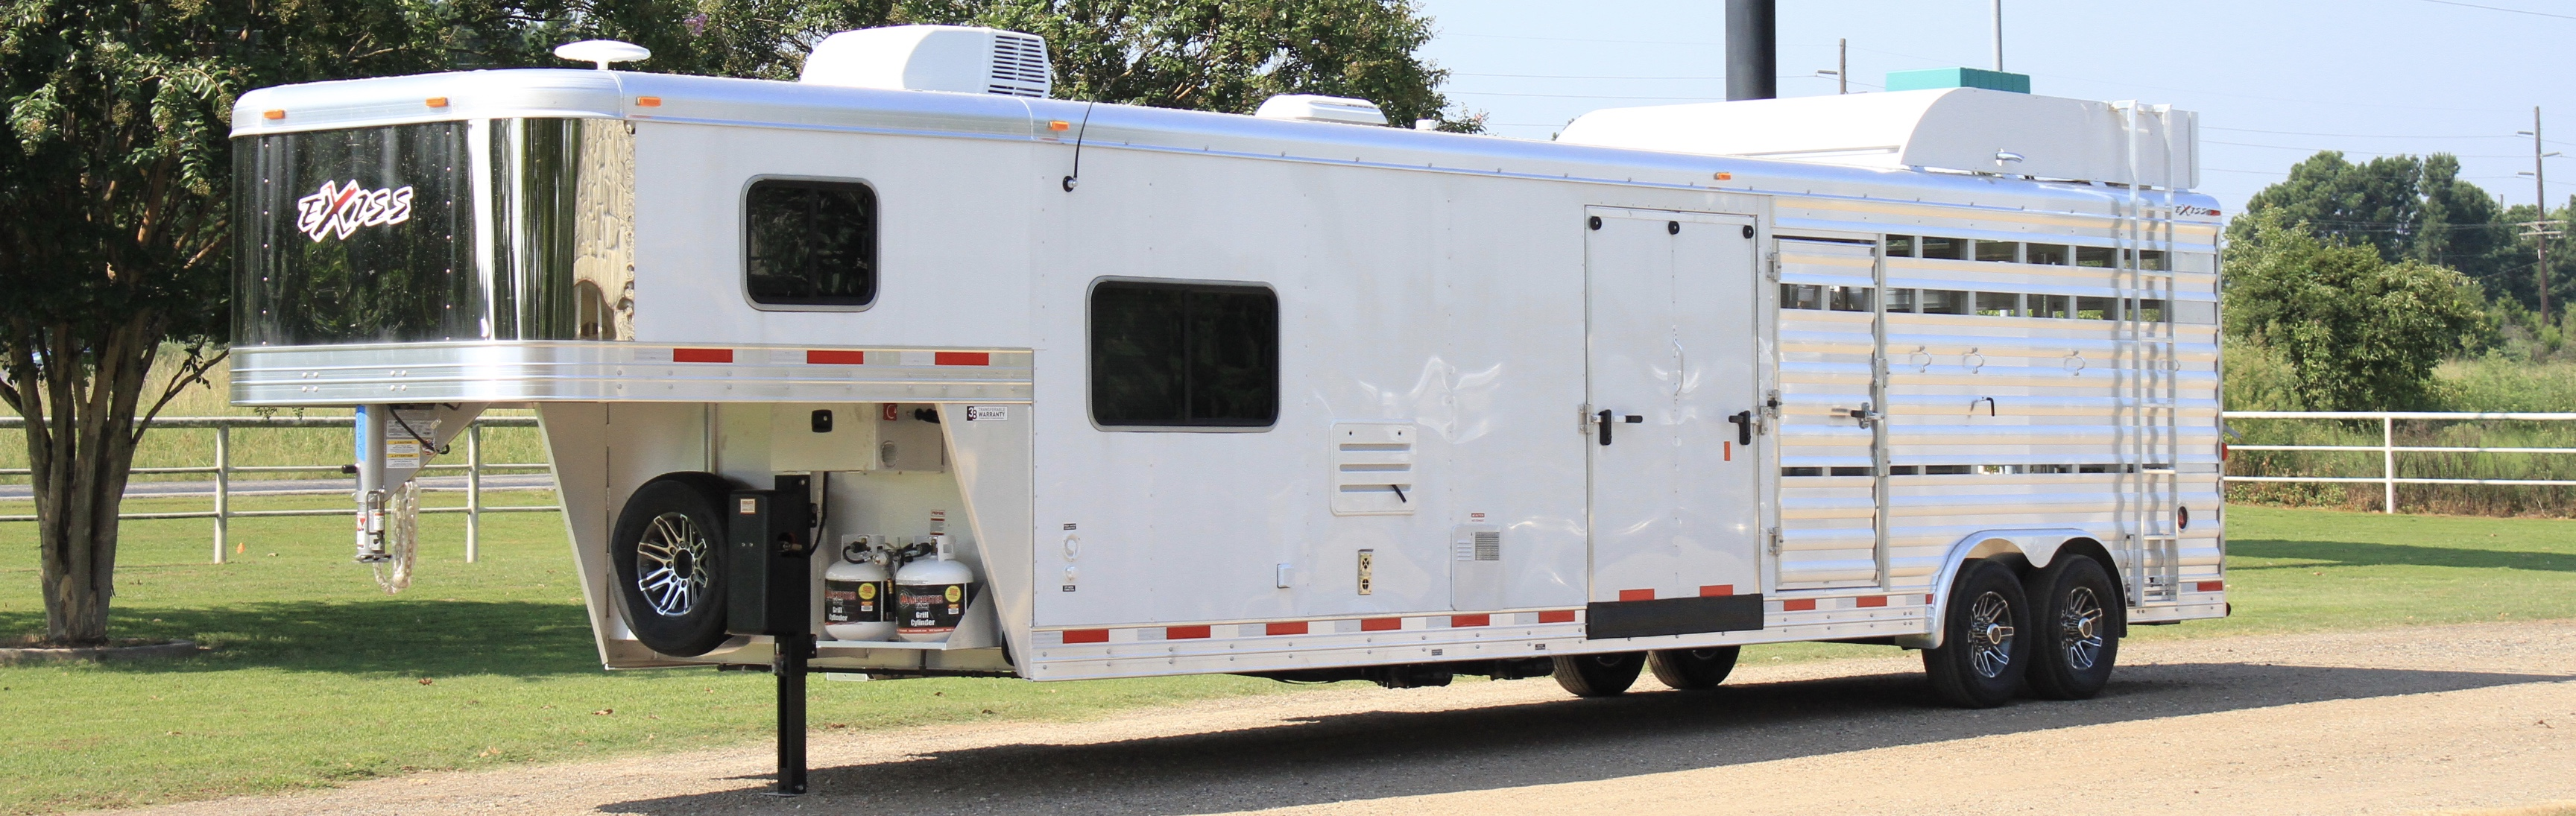 Used Cargo Trailers For Sale In Houston Texas With Html